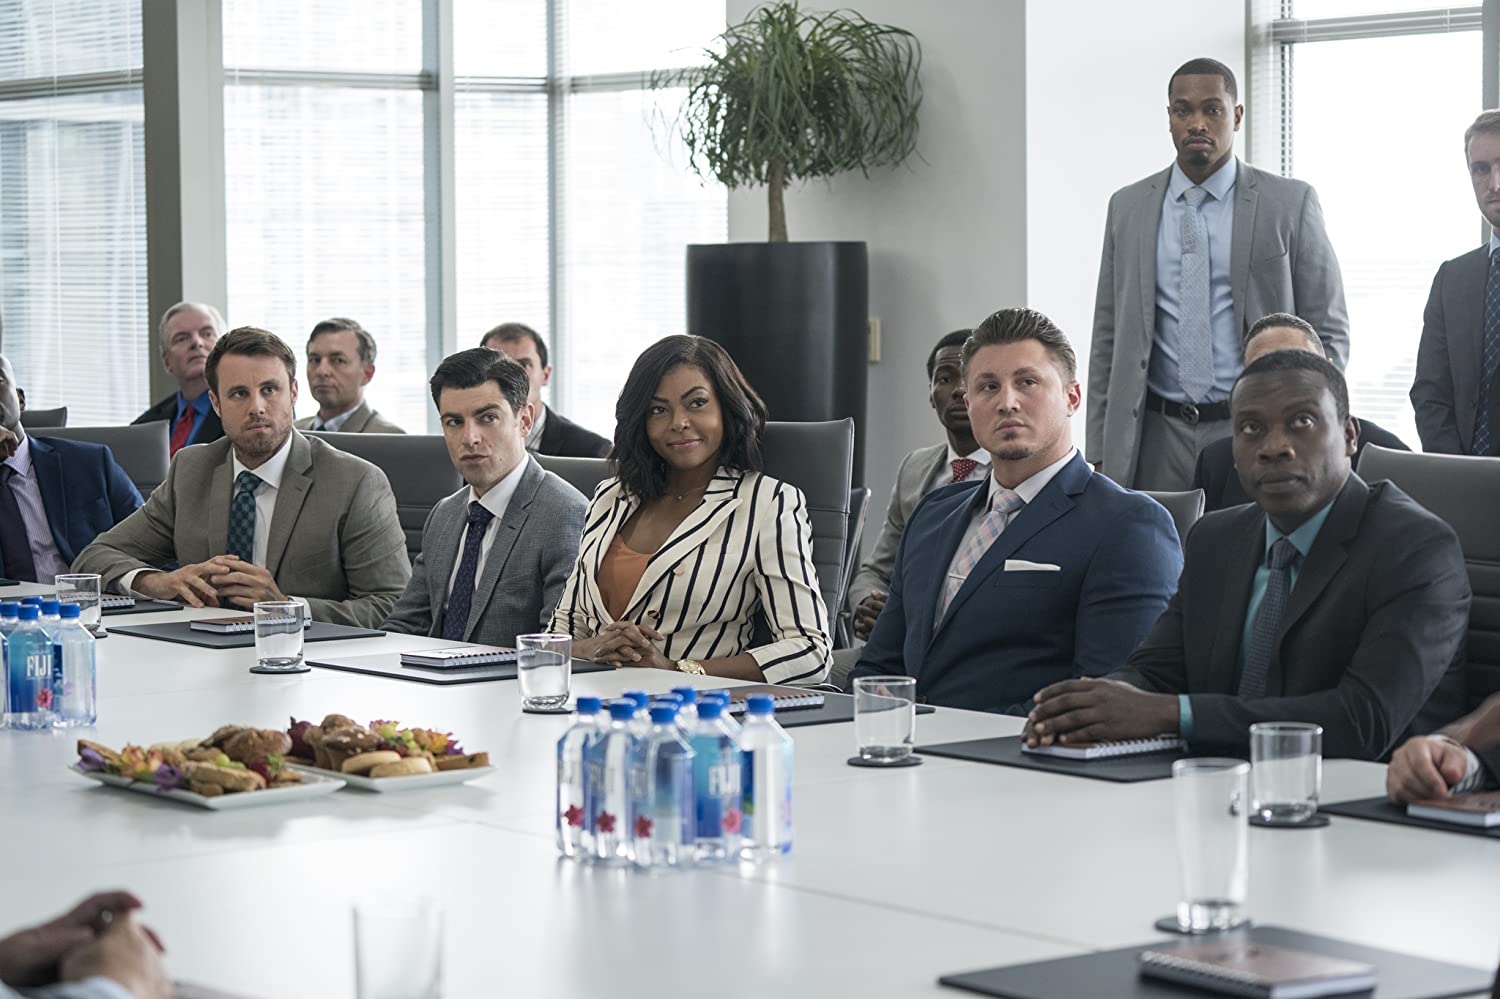 Max Greenfield, Taraji P. Henson, and Chris Witaske in What Men Want (2019)